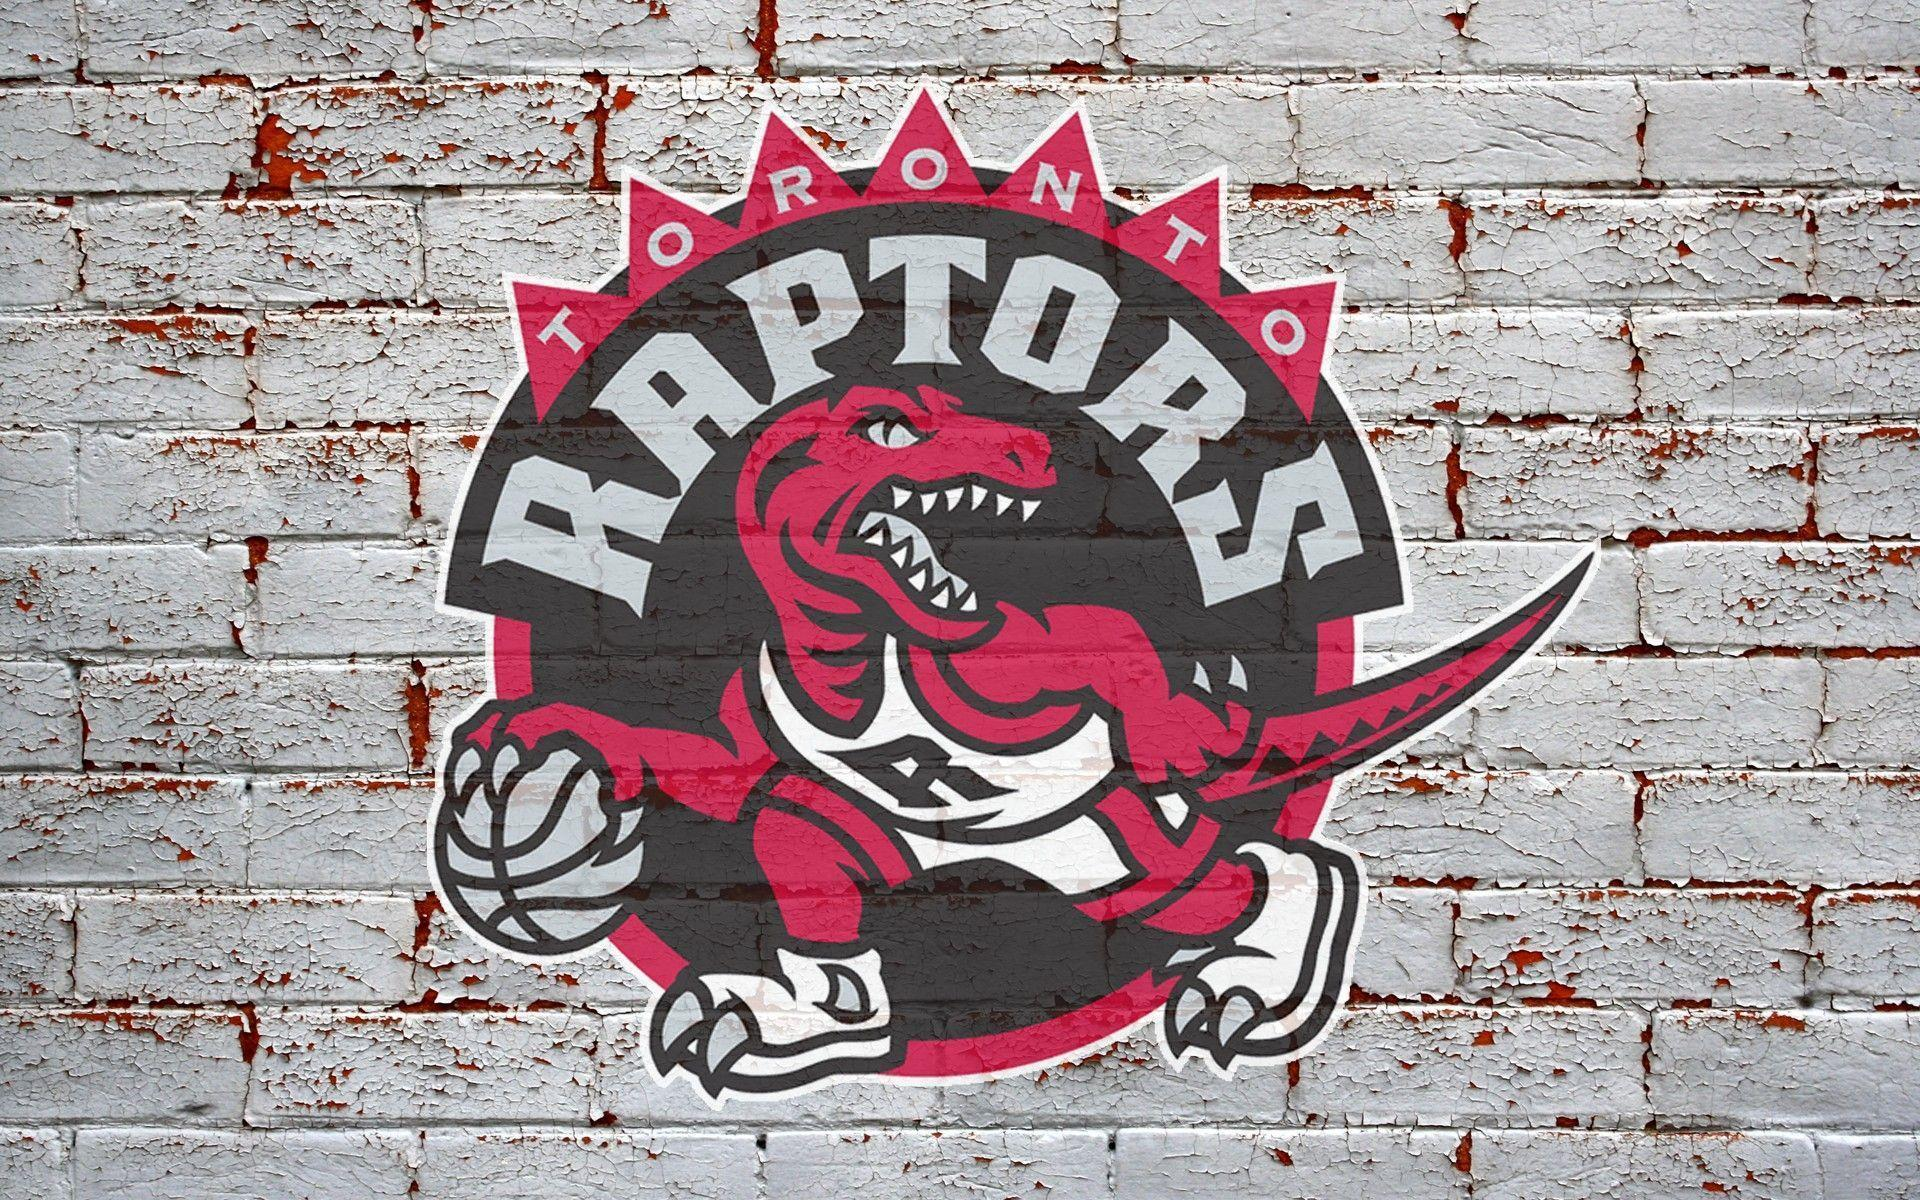 1000+ image about Toronto Raptors wallpapers